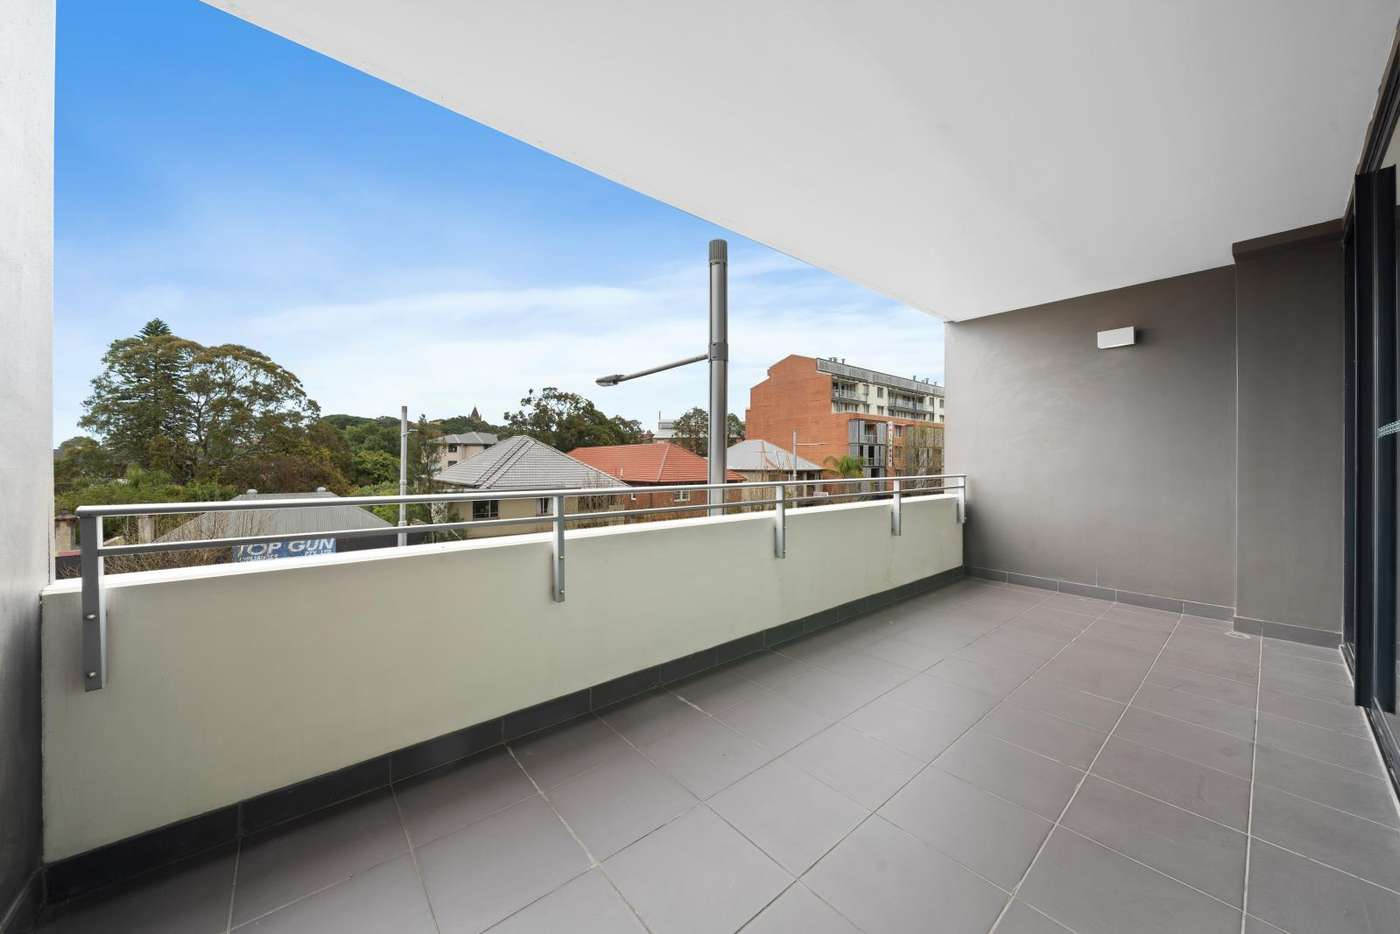 Sixth view of Homely apartment listing, 301A/264 Anzac Parade, Kensington NSW 2033